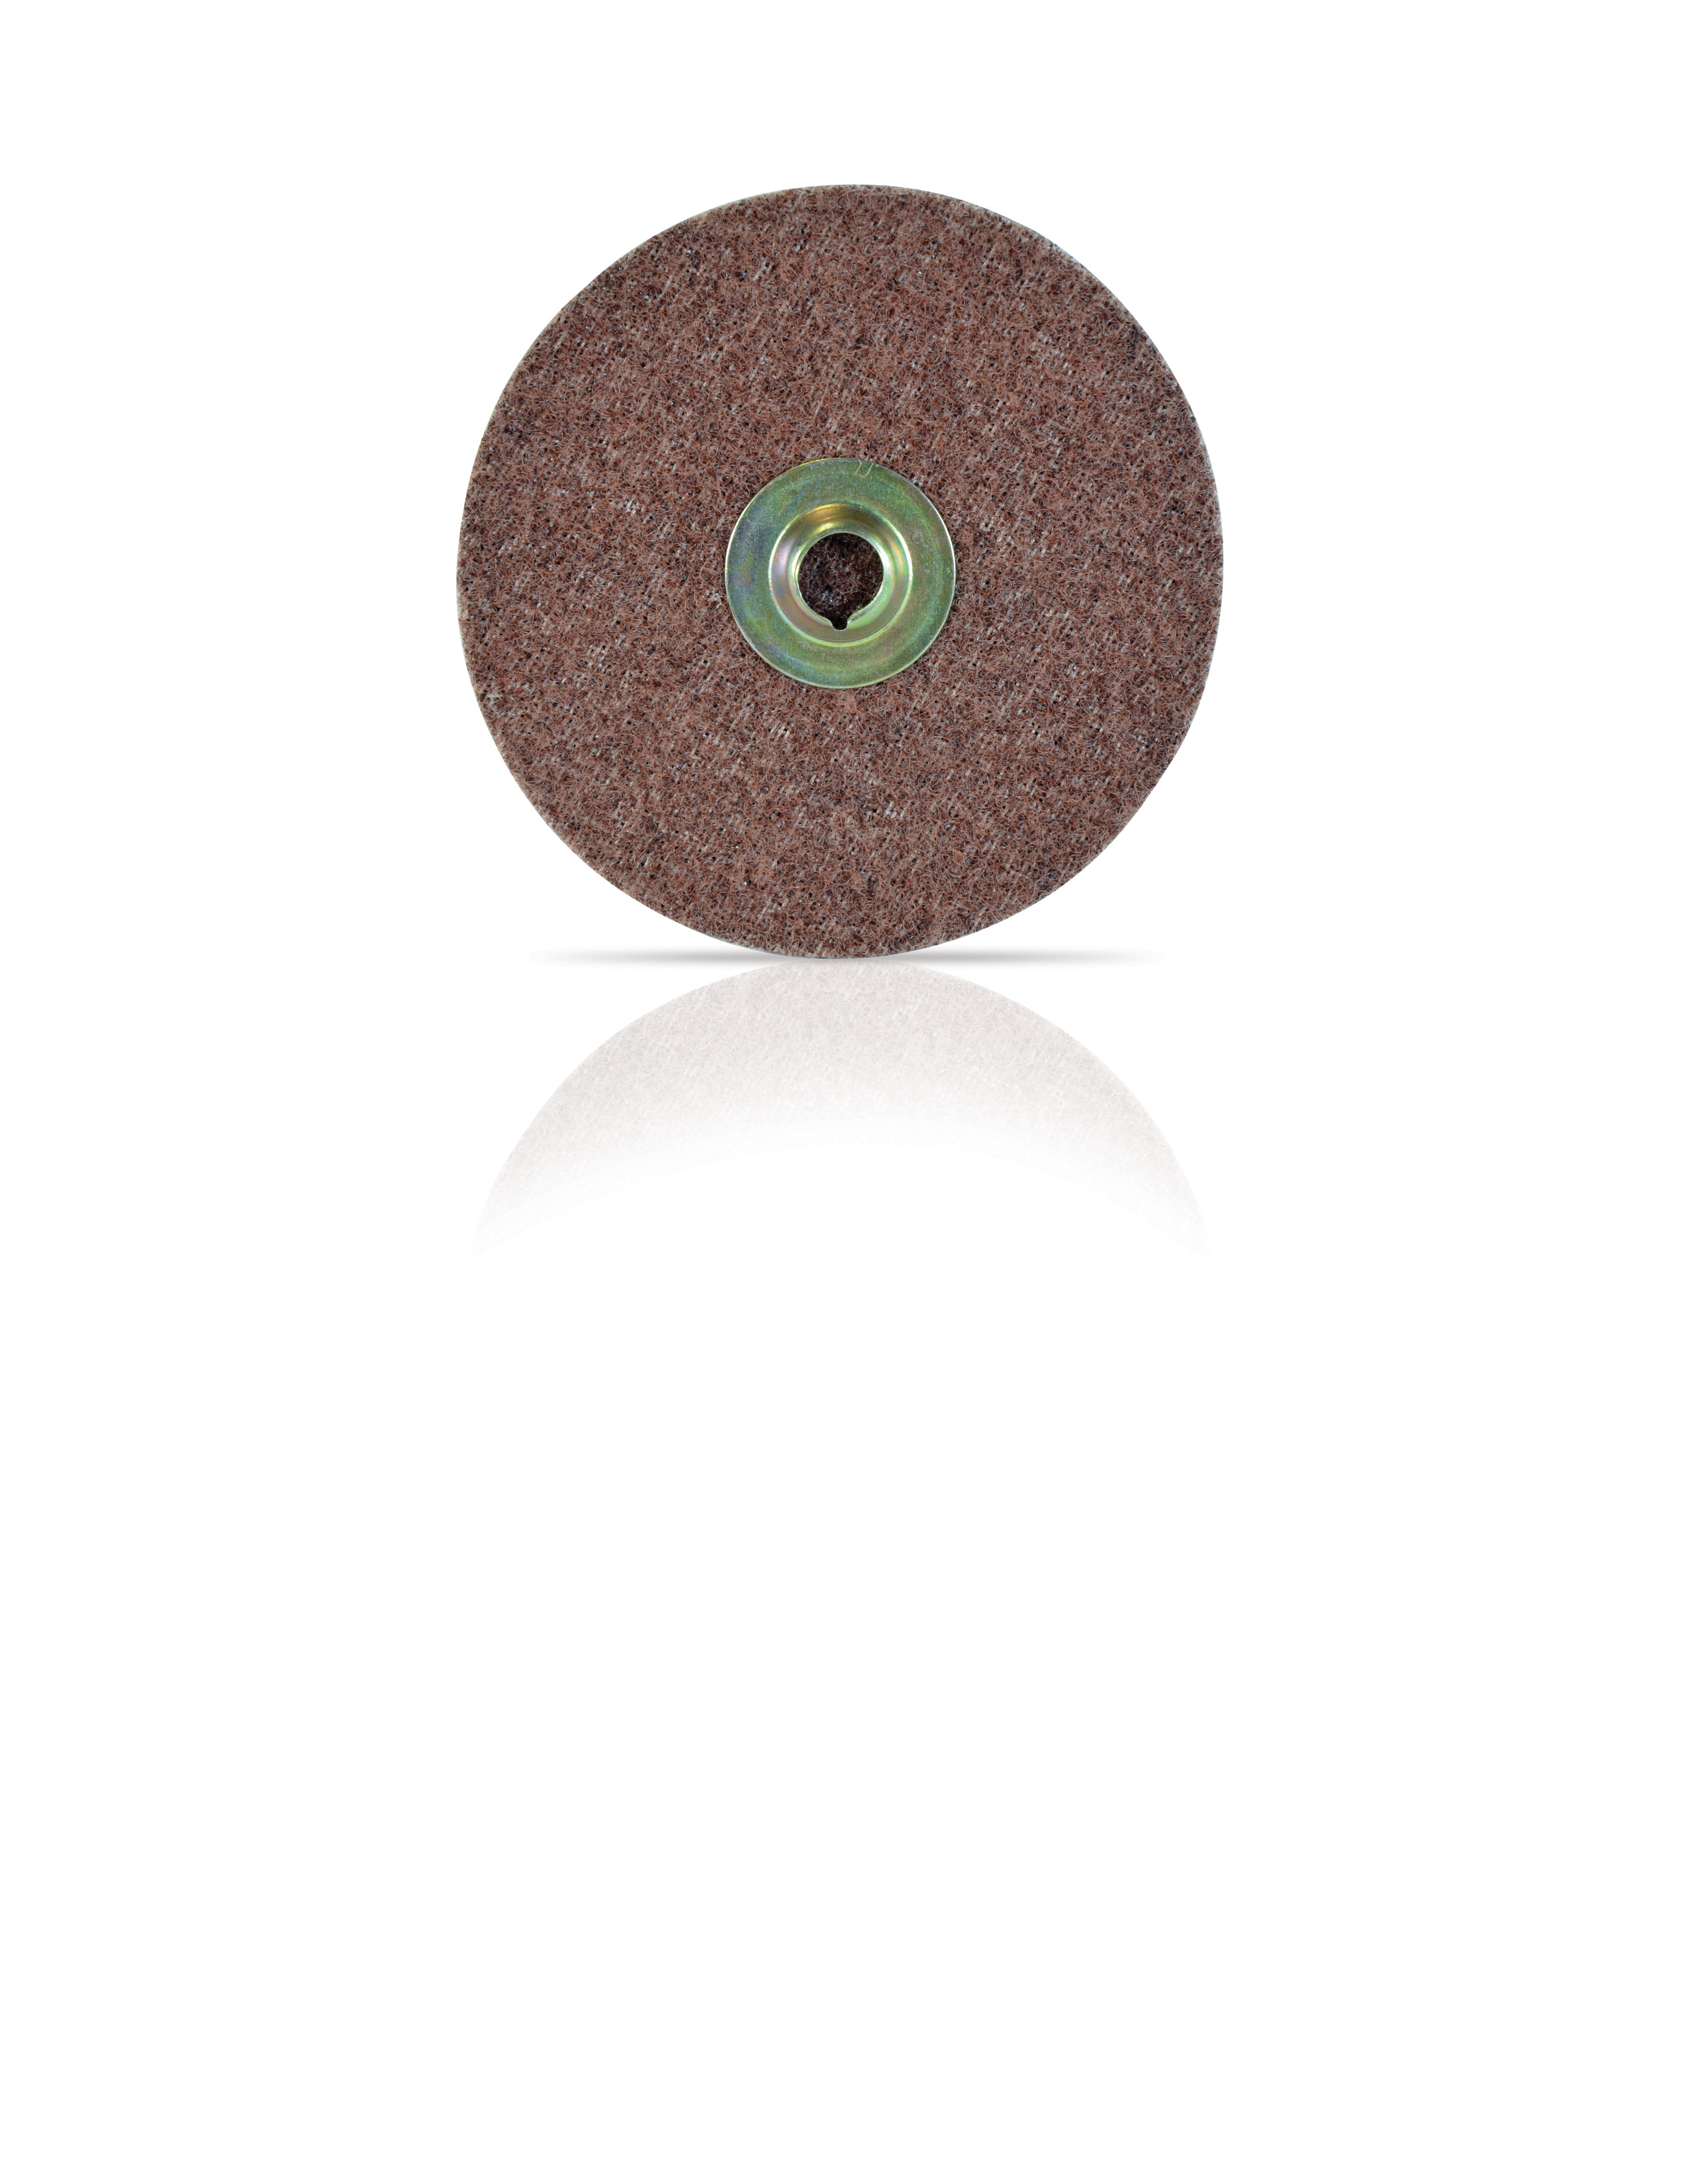 3M 5 Inch x Nh Surface Conditioning Disc Coarse Grit Brown Aluminum Oxide Pack of 10.